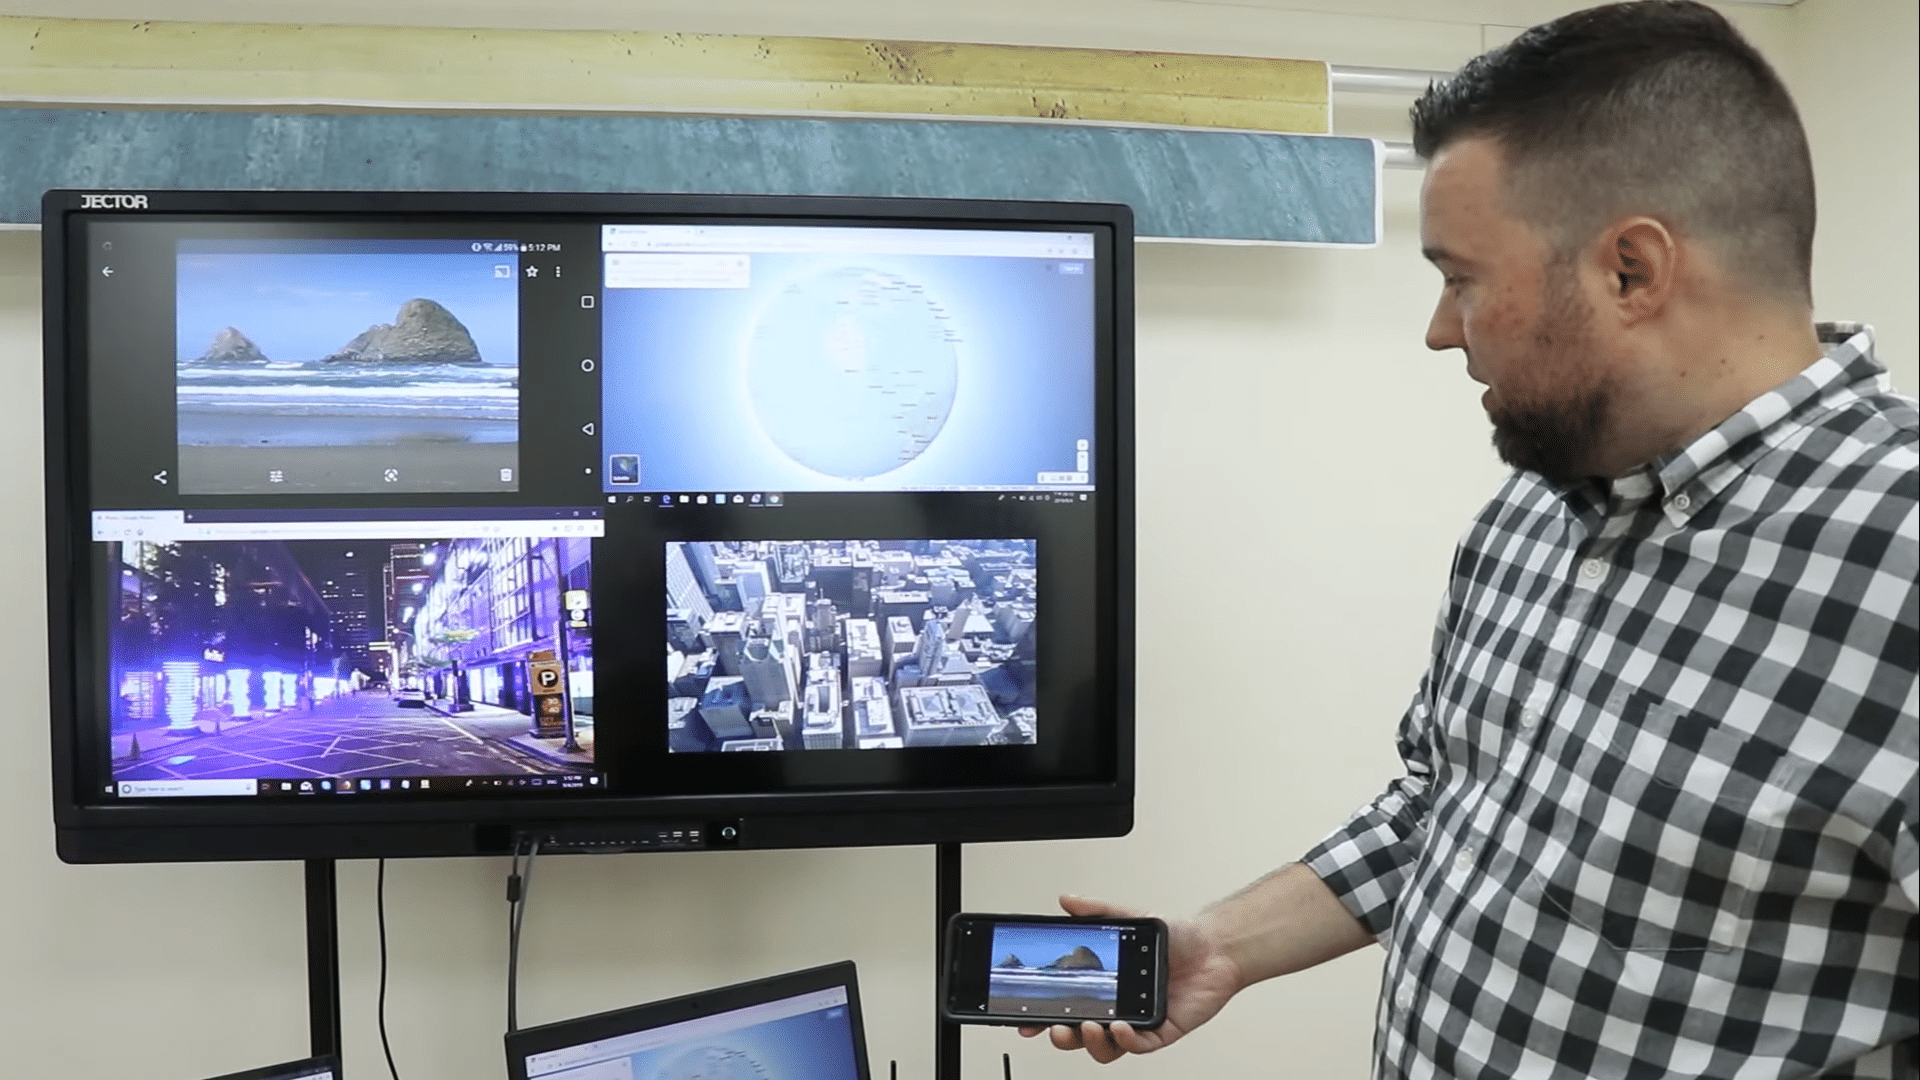 QuattroPod allows four participants to show their devices' contents on the big screen at the same time.